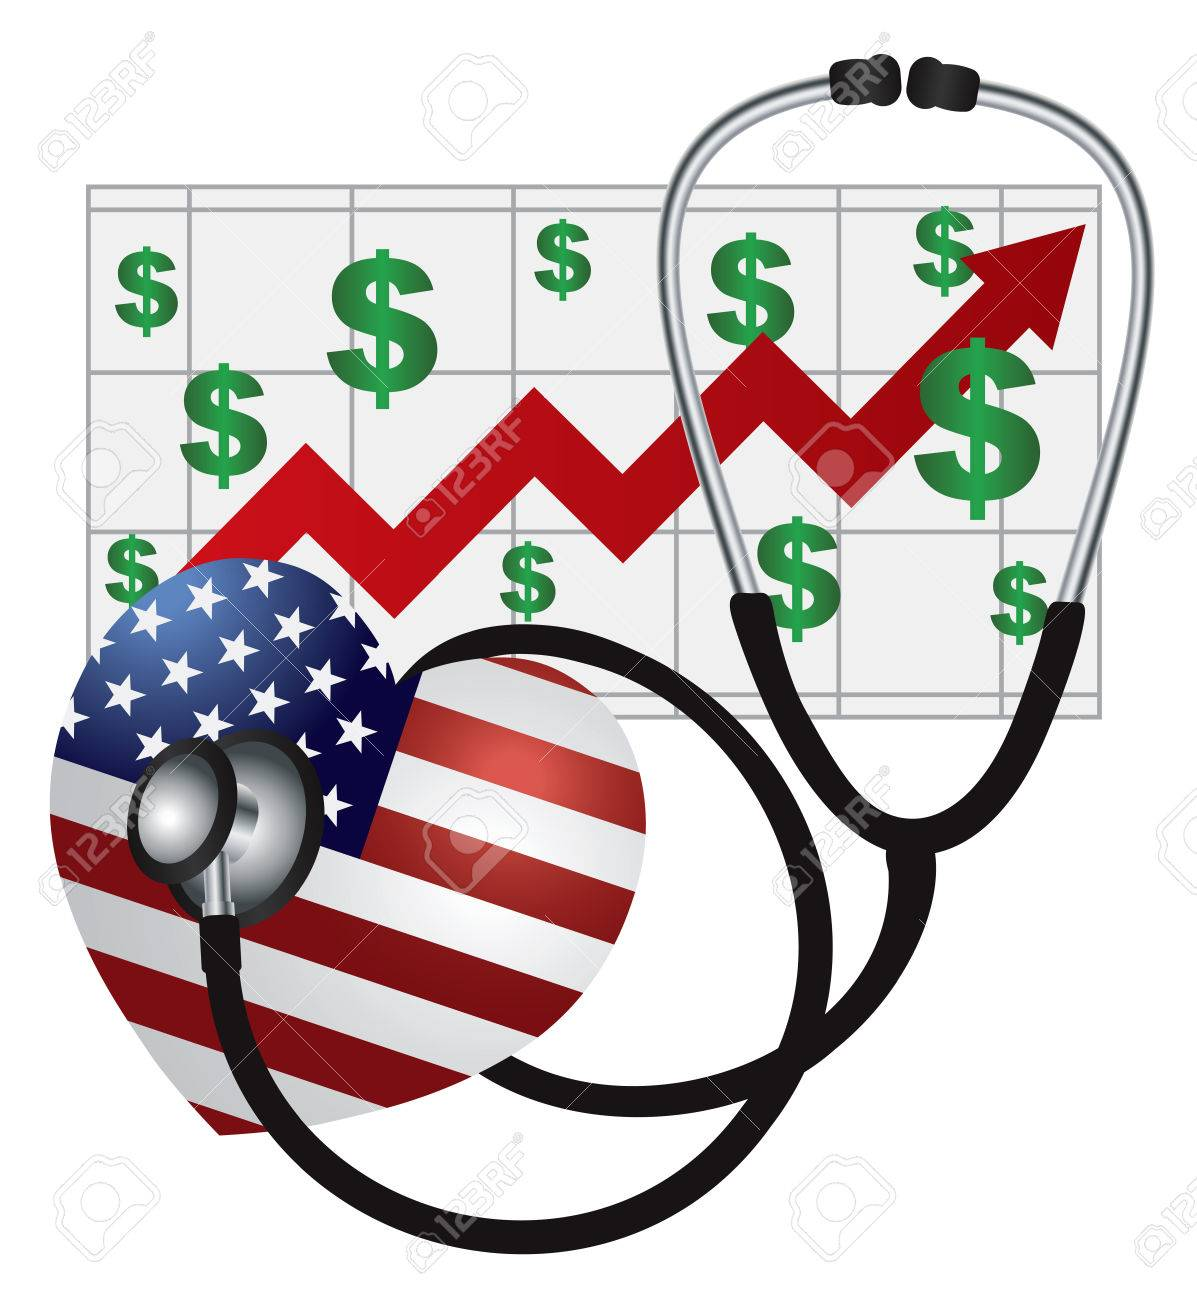 Stethoscope Medical Device Listening to USA Flag Heartbeat with Health Cost Rising Chart on White Background Illustration Stock Vector - 23848222